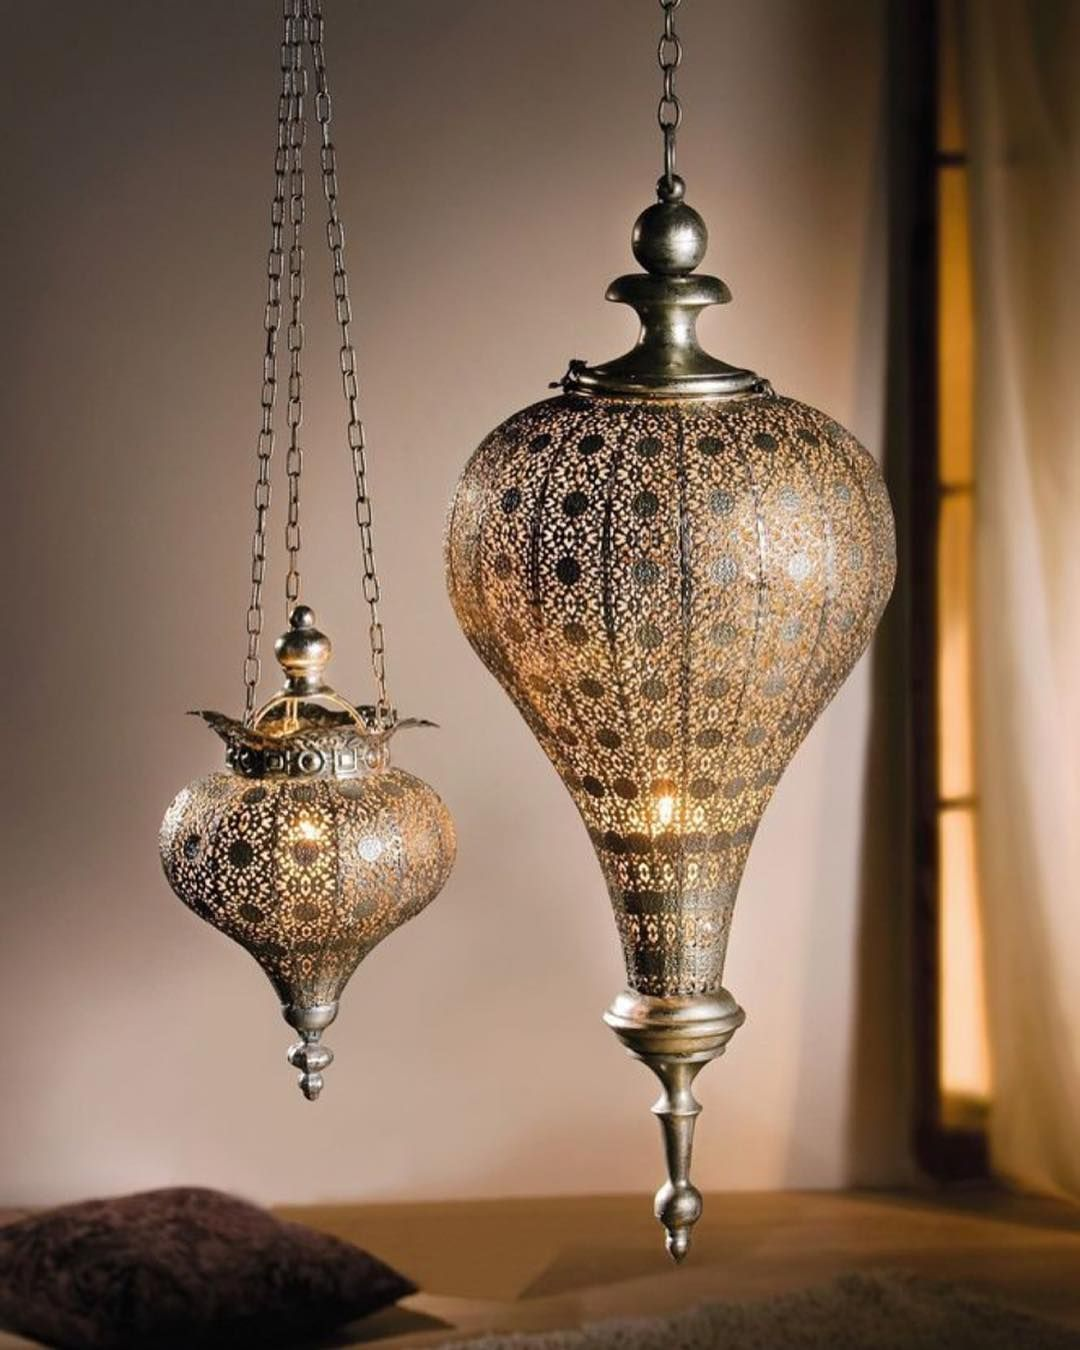 Personalize Your Home Decoration With Pretty Digital Printables Hangelaternen Metall Laterne Orientalische Laterne